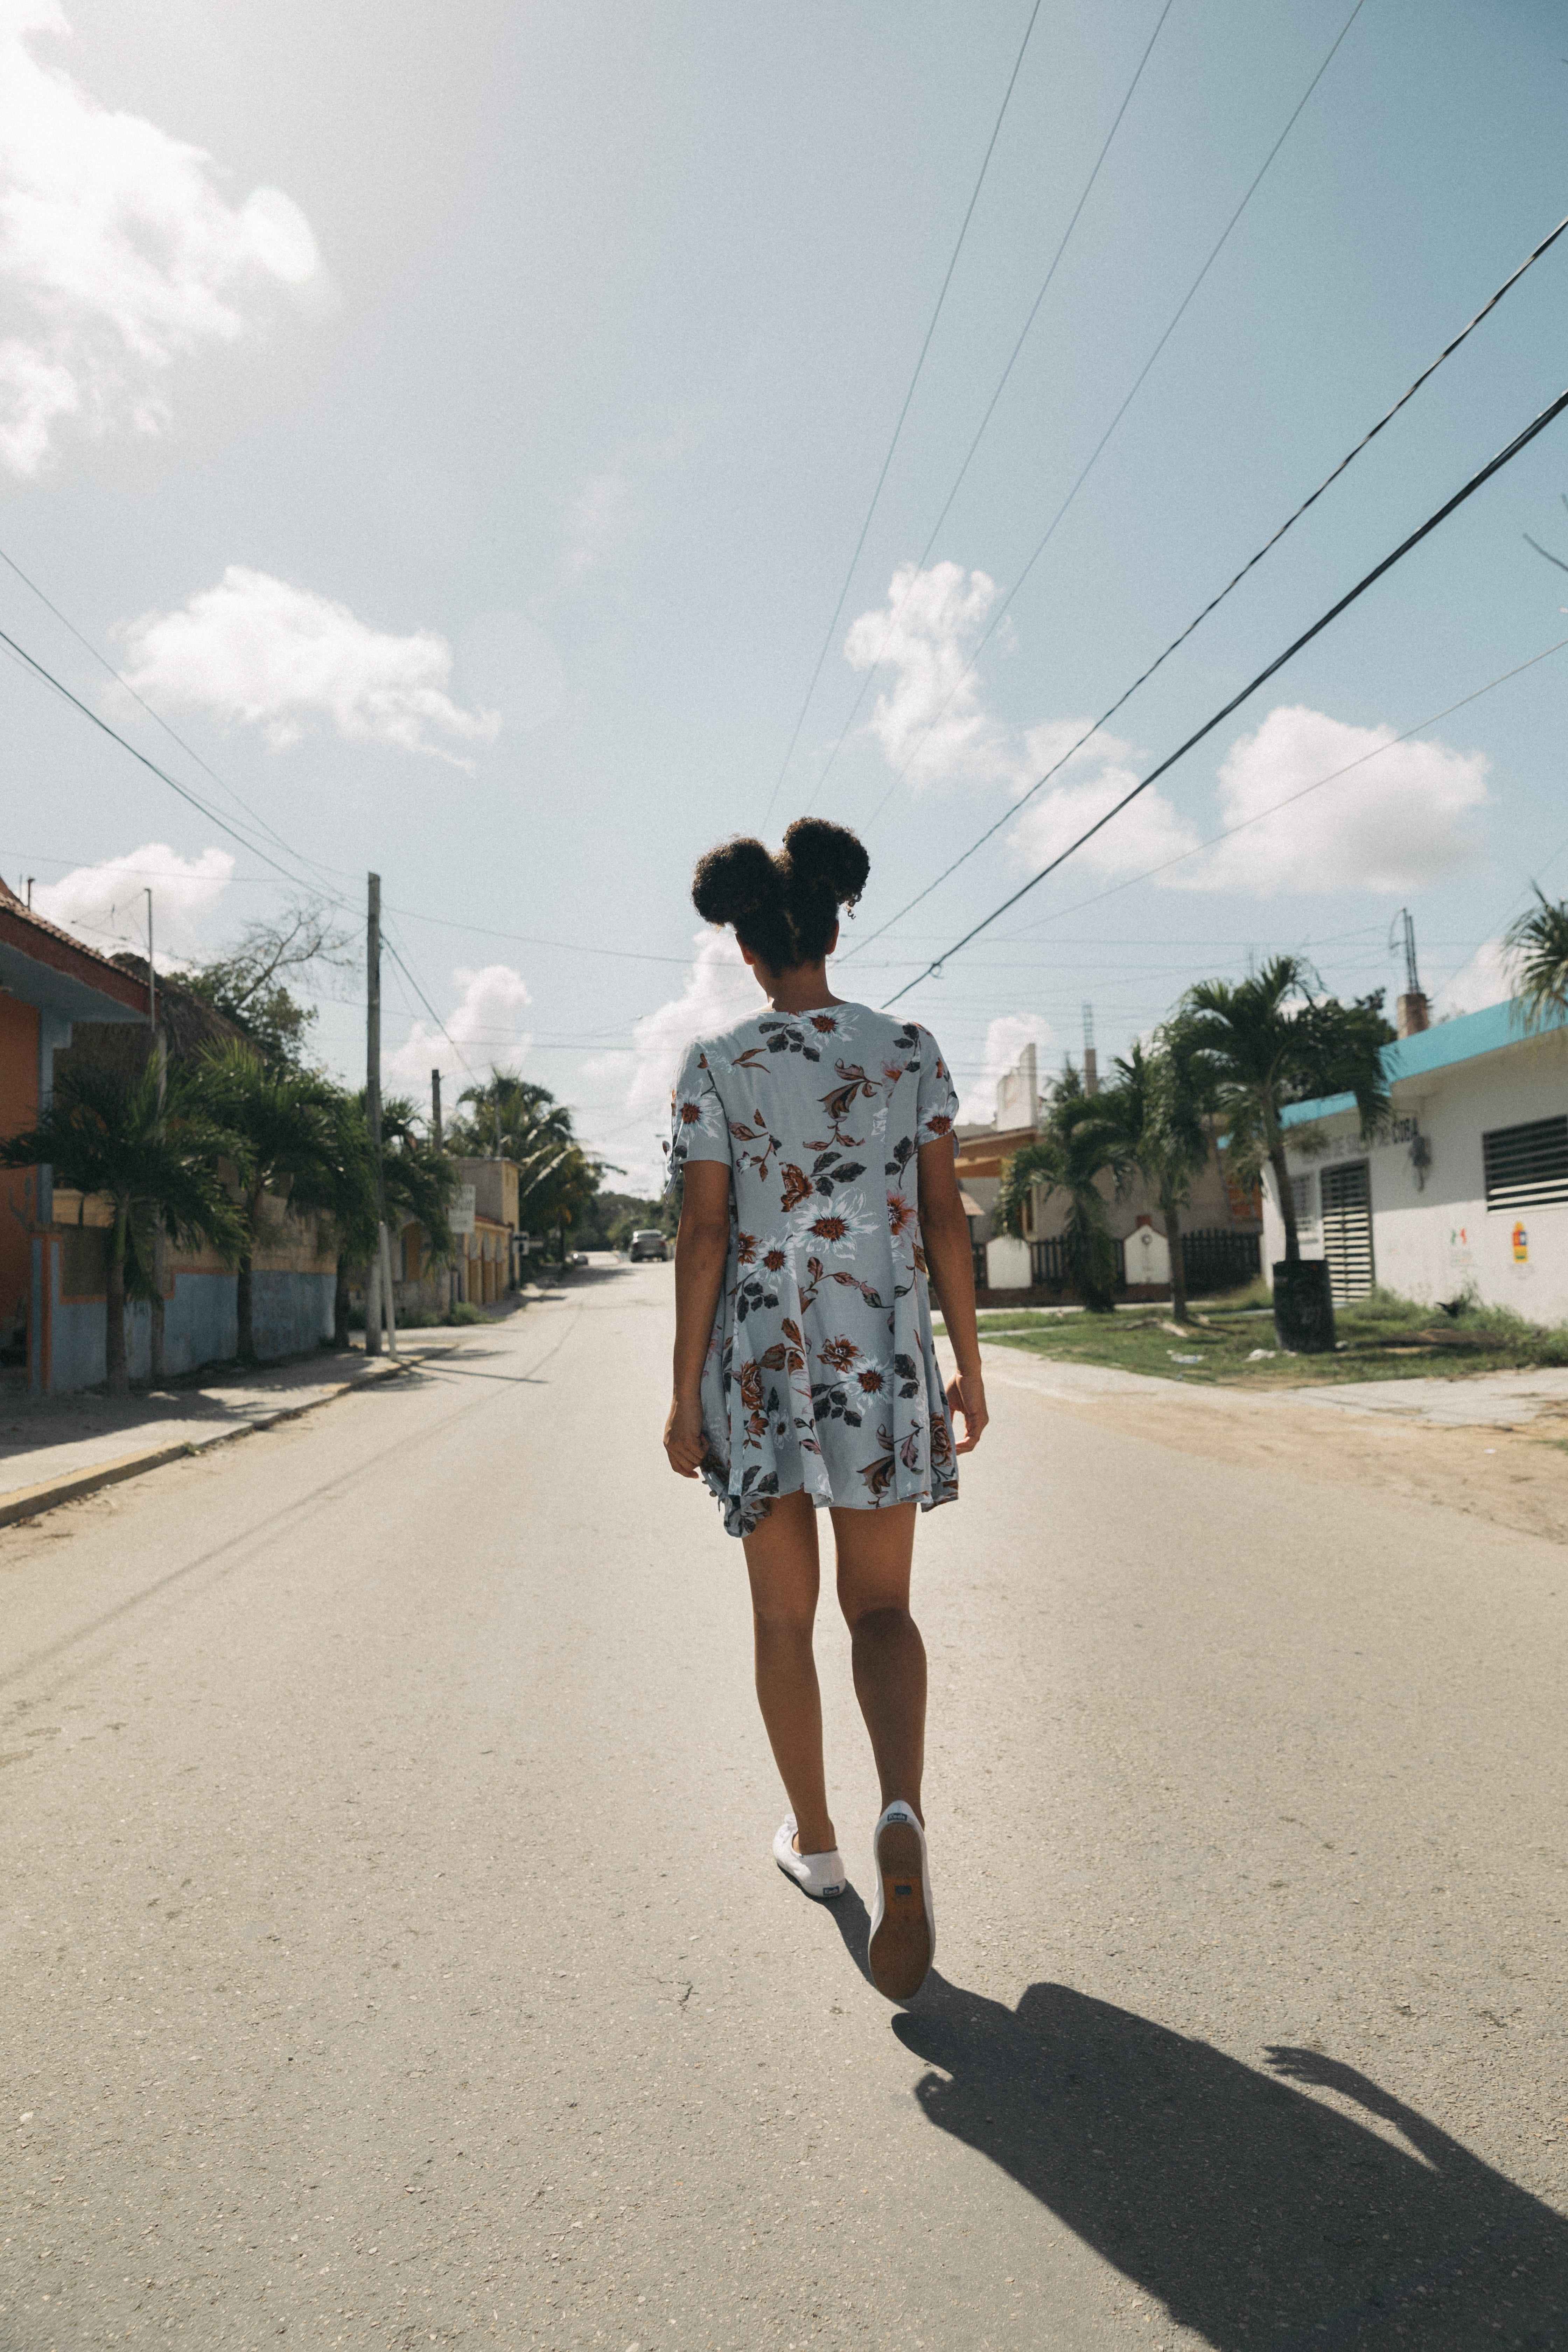 Young African-American woman in a sundress walking away from the camera; image by Jakob Owens, via Unsplash.com.